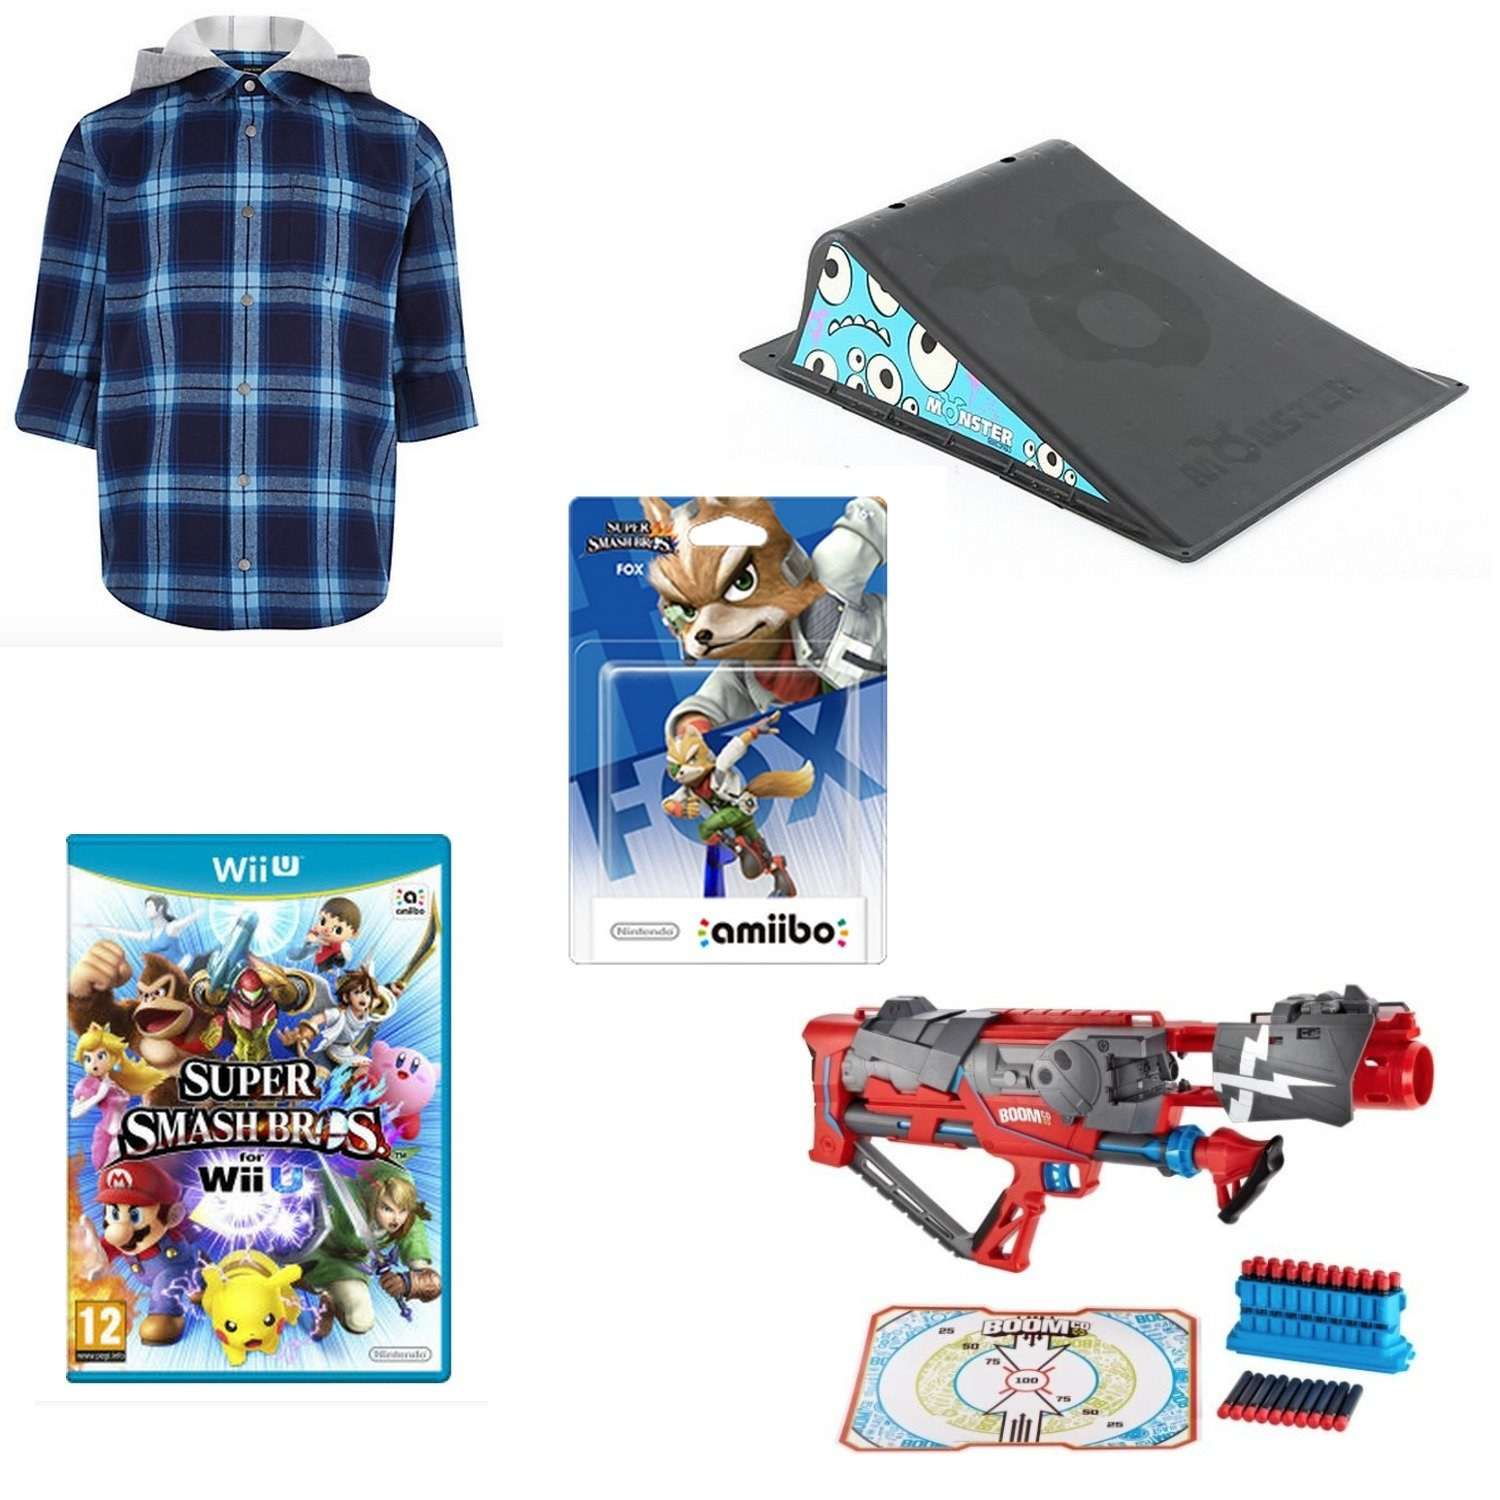 10 Lovable Christmas Ideas For 12 Year Old Boys Gifts